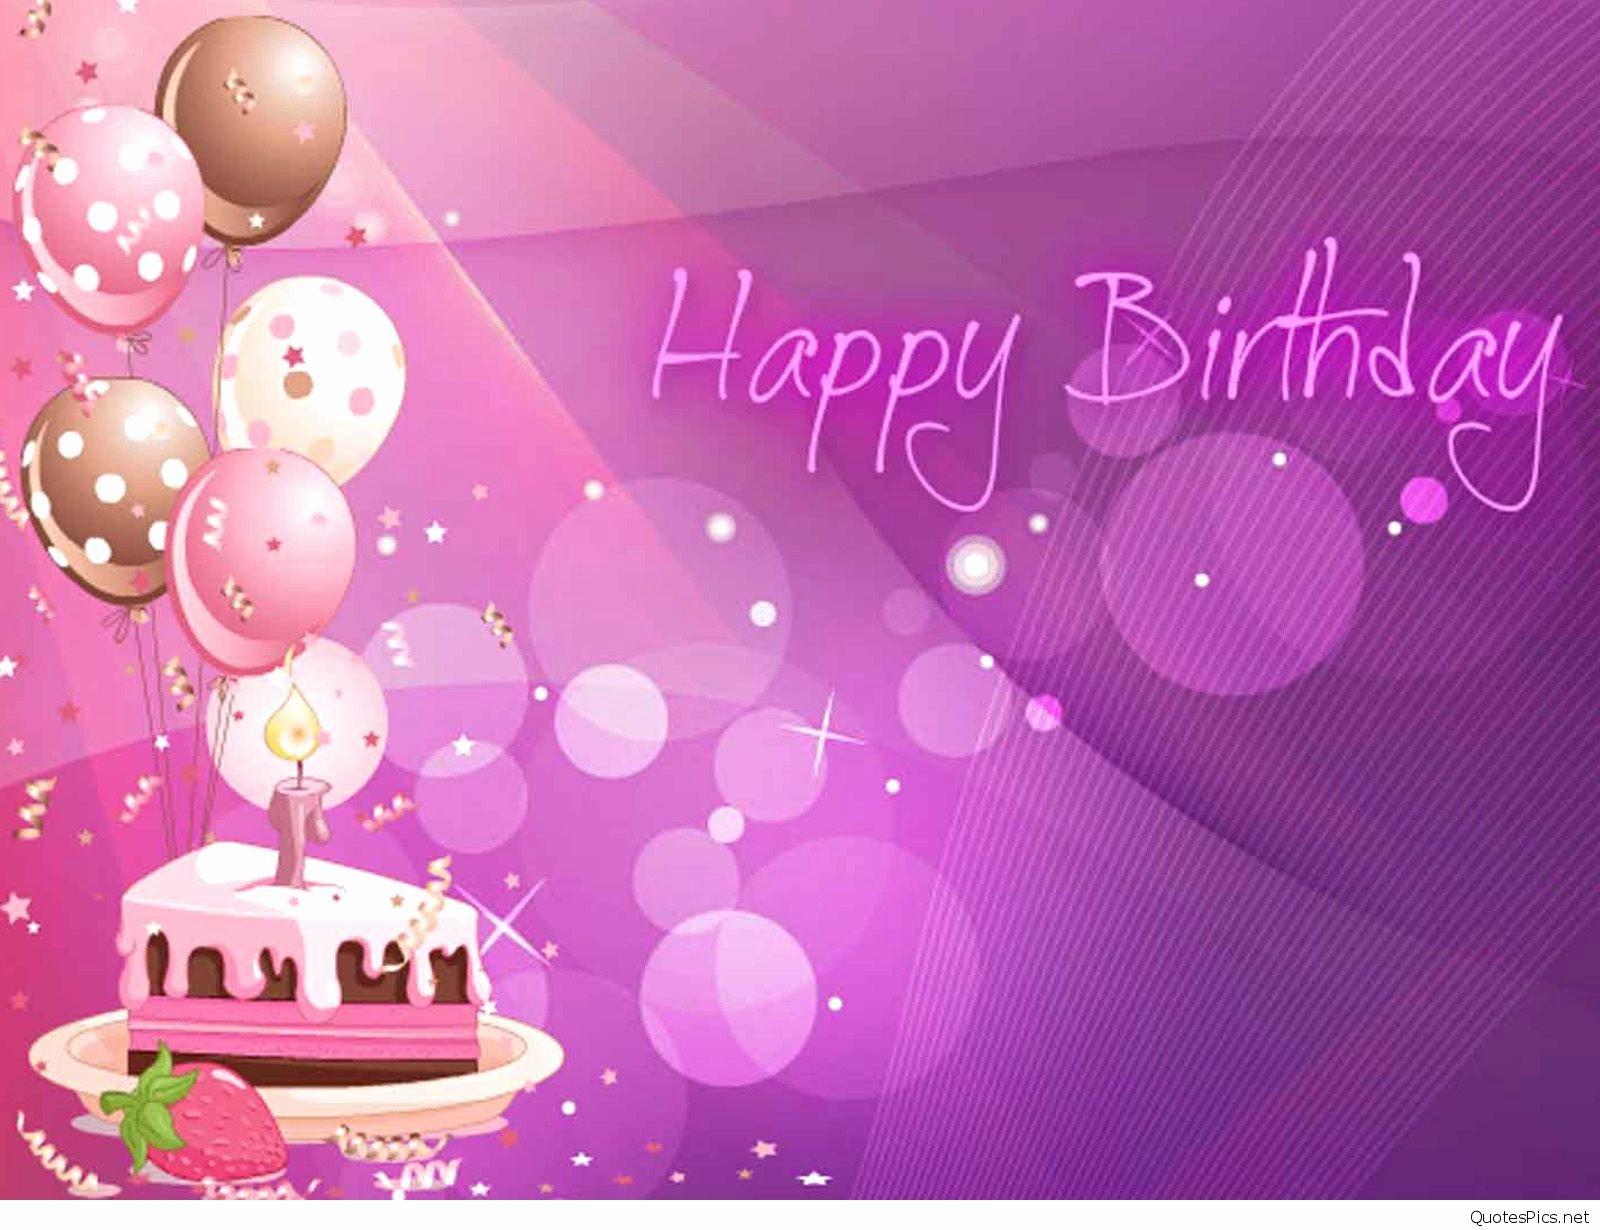 Happy Birthday Background Images Elegant Amazing Birthday Wishes Cards and Wallpapers Hd